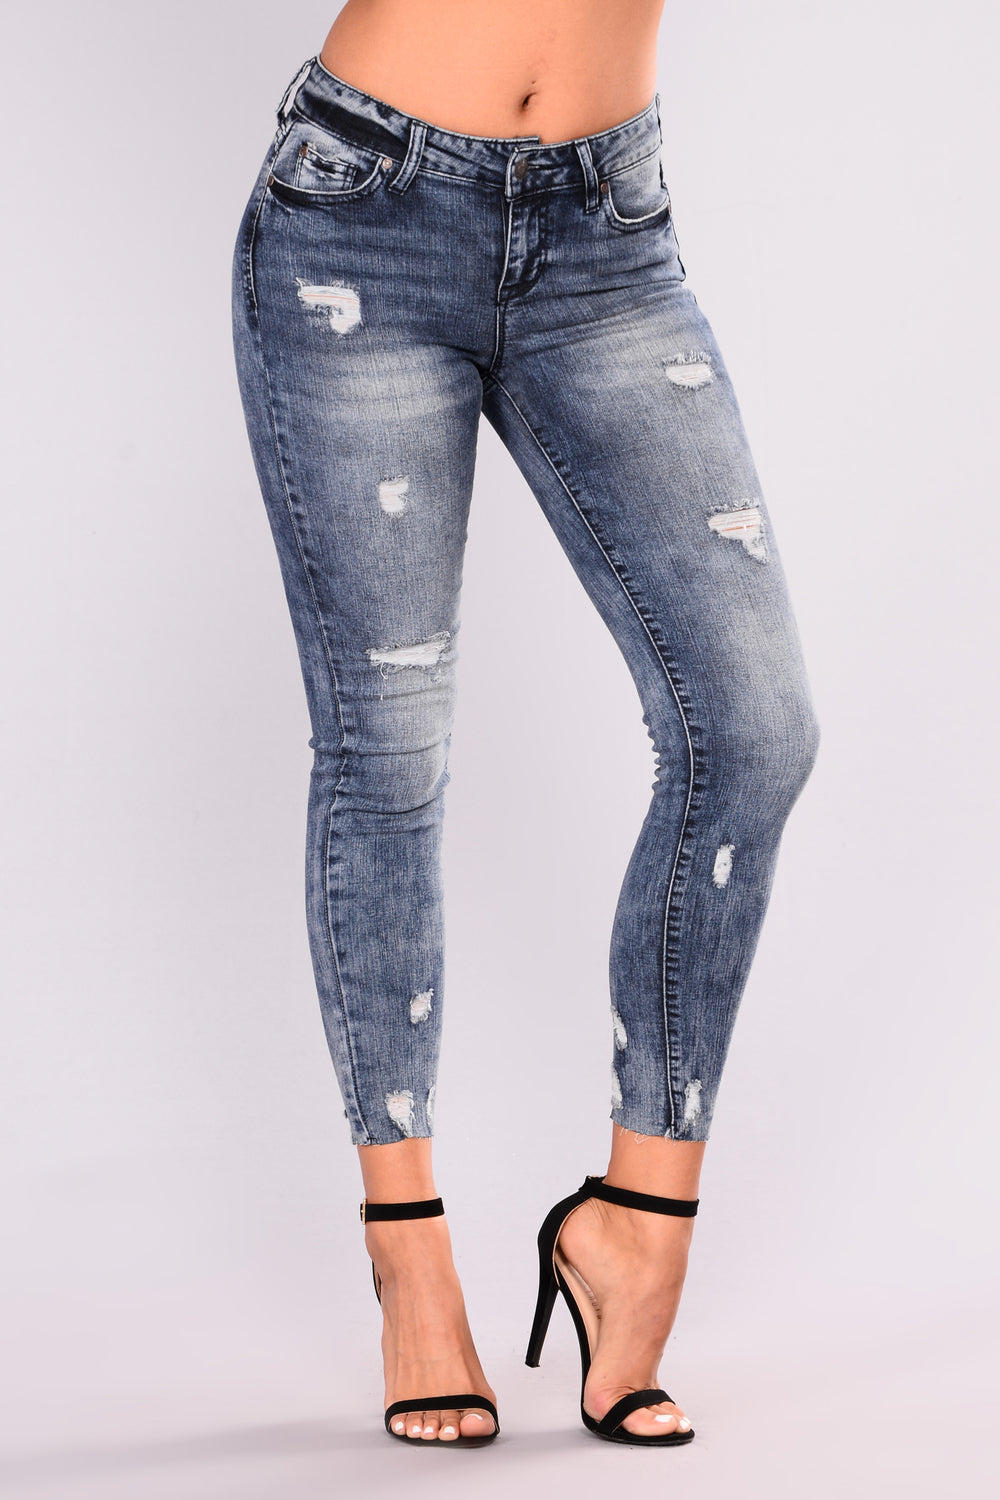 Sticky Situation Ankle Jeans - Medium Blue Wash